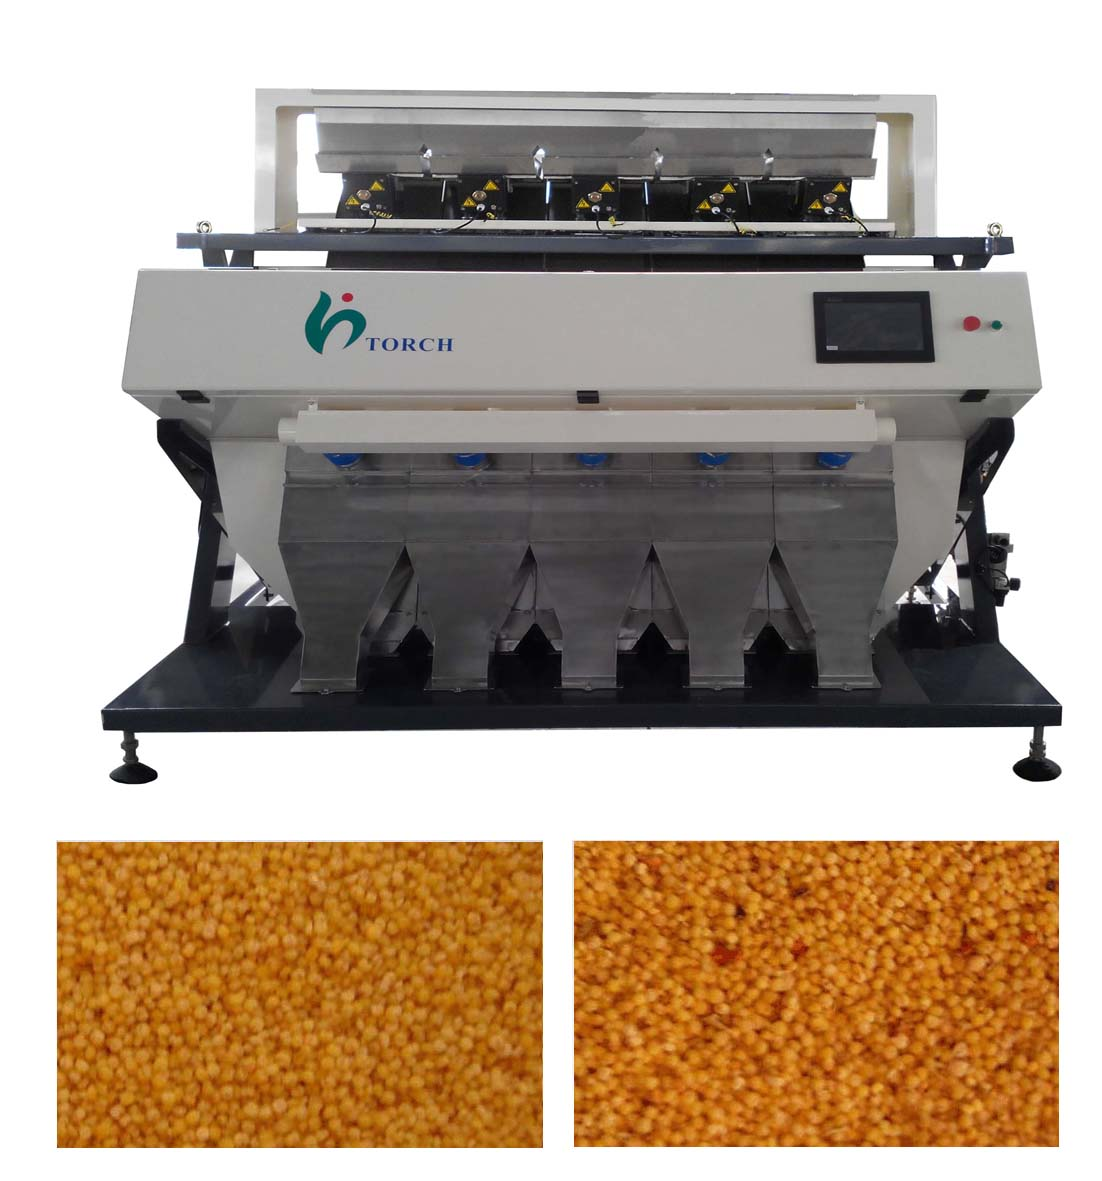 Millet CCD Color Sorter Machine